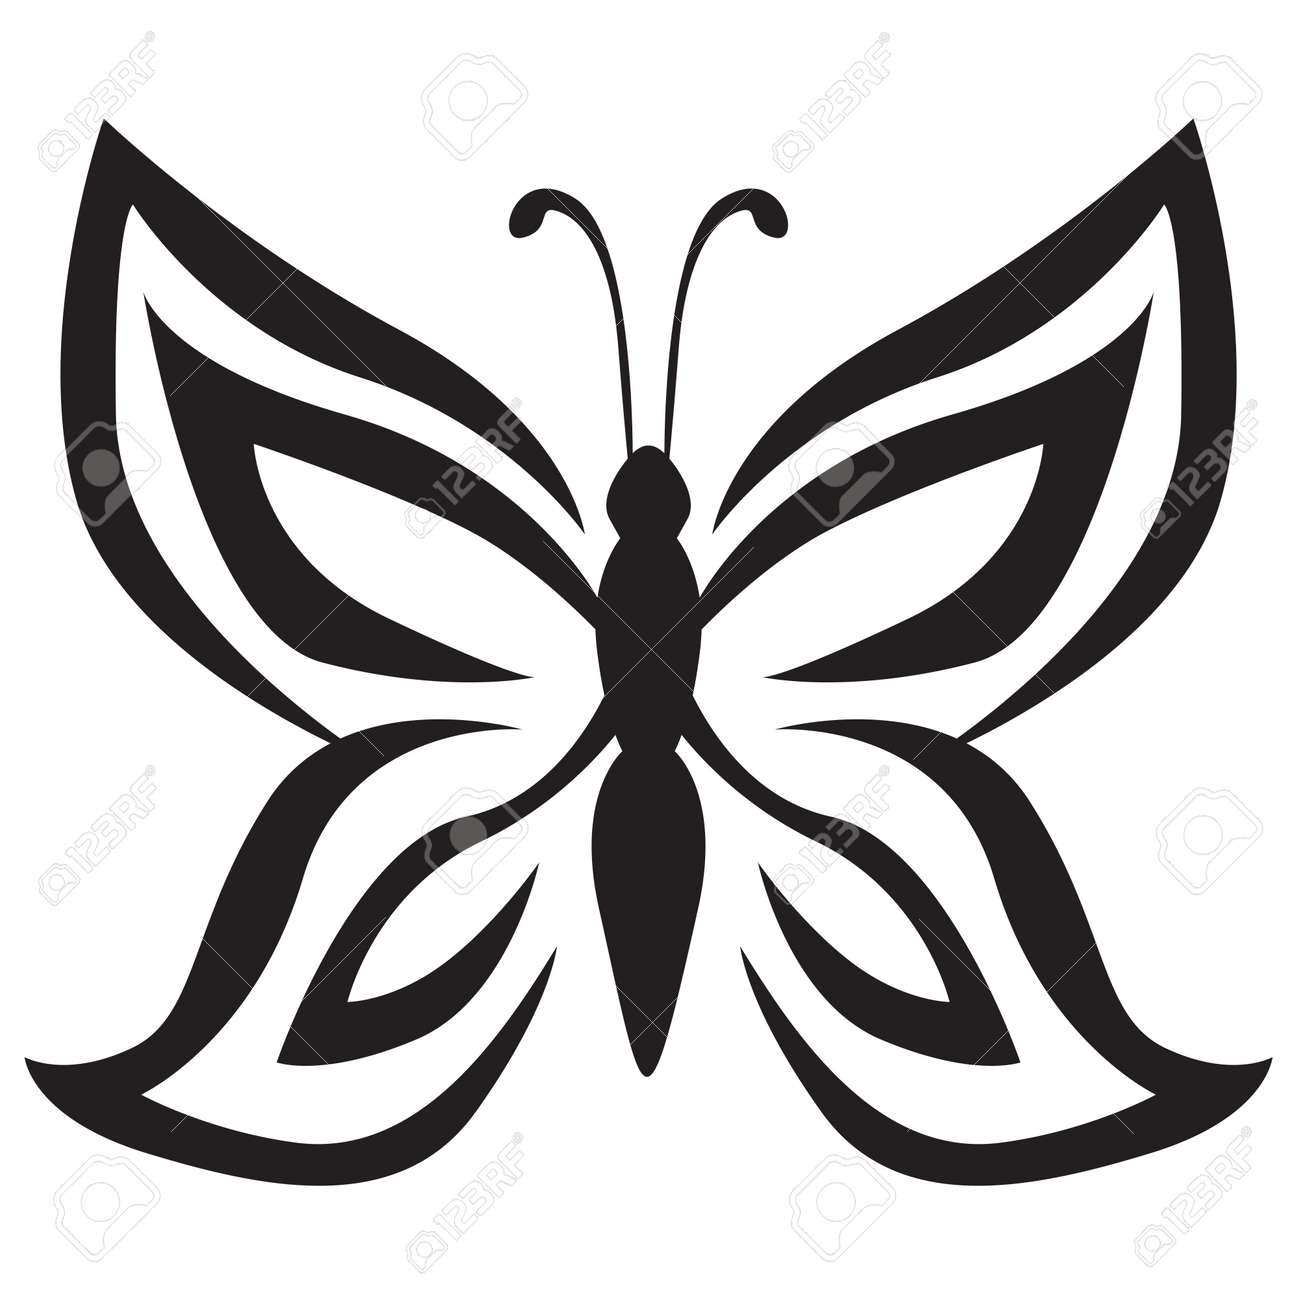 stylized image of butterfly icon royalty free cliparts vectors